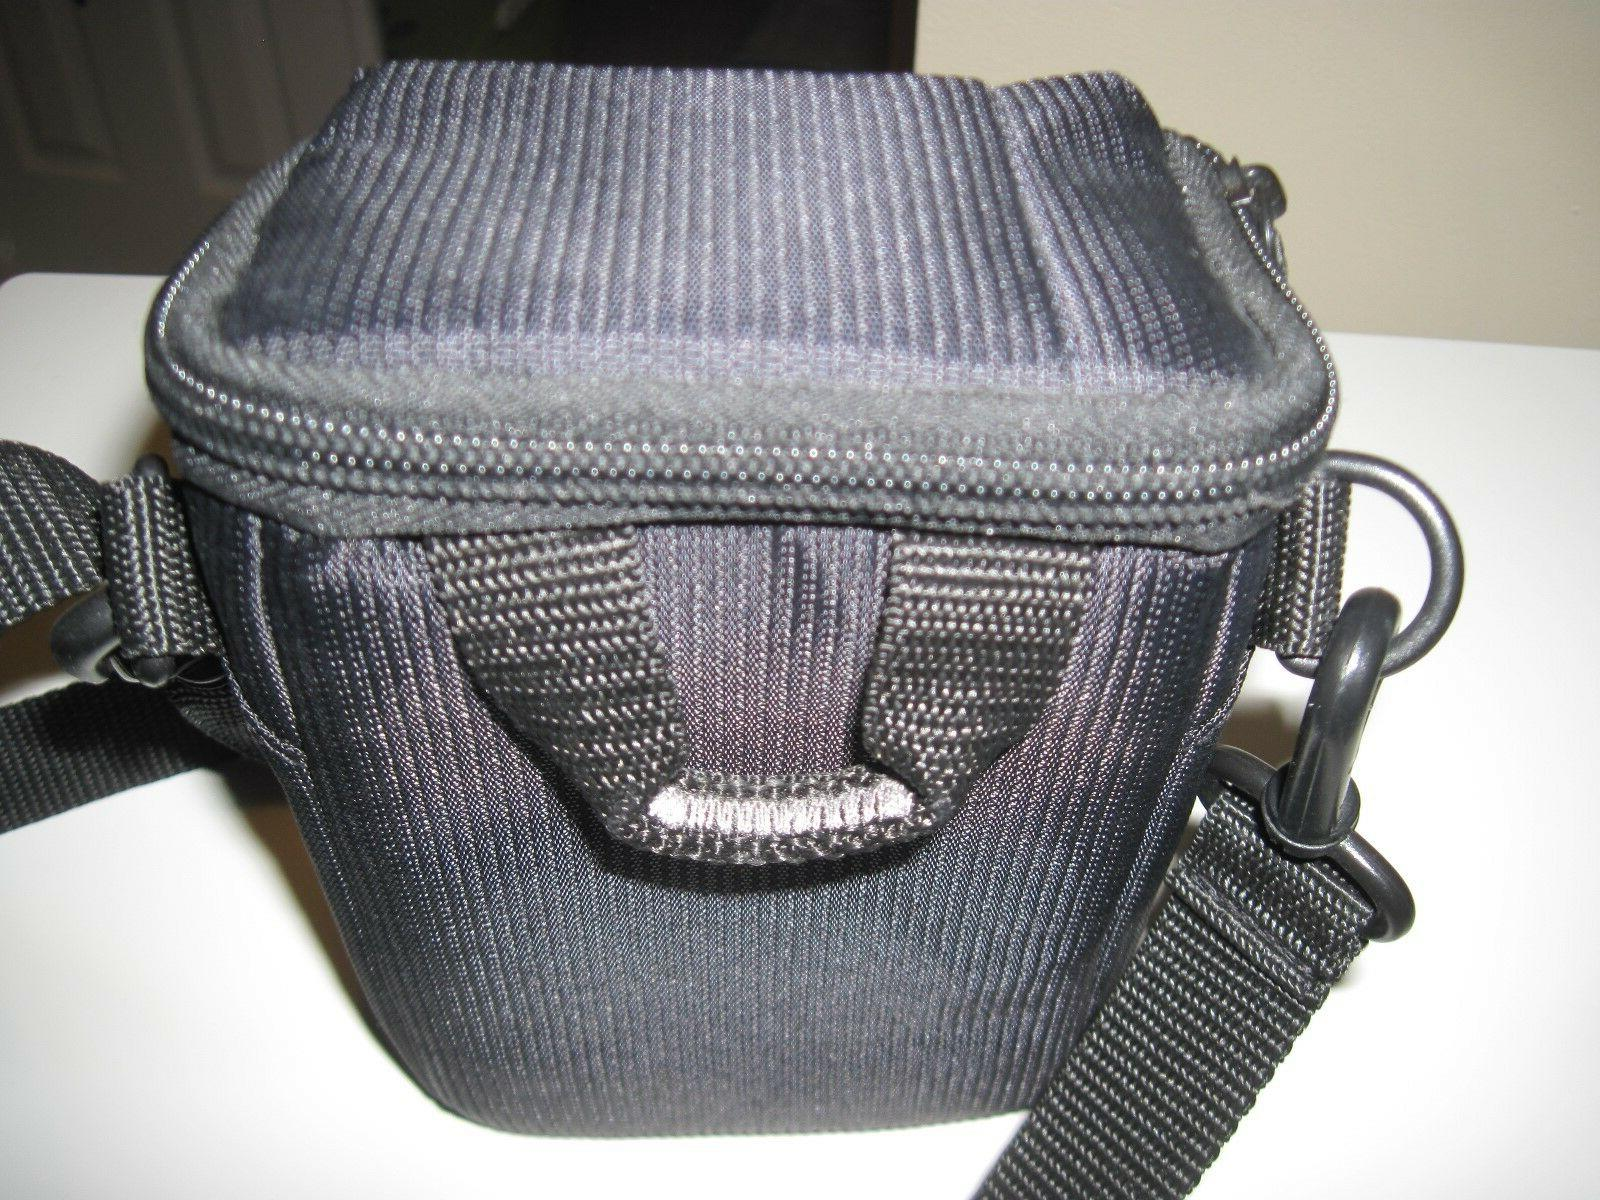 Case Camcorder/High Zoom Camera Case NWT